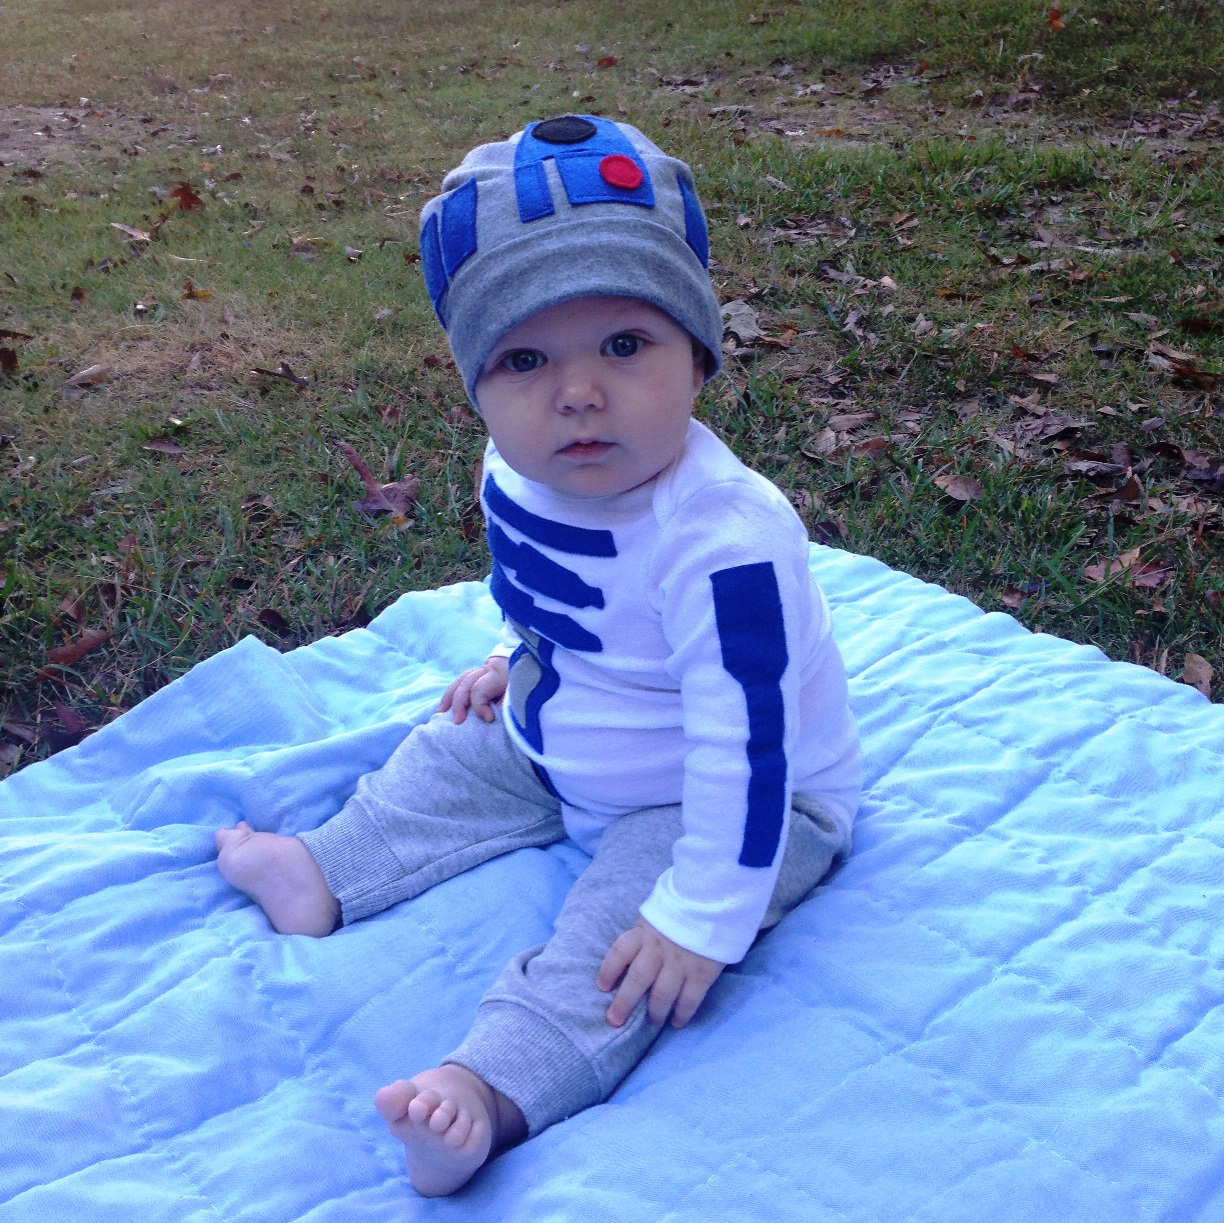 halloween2014 (3)  sc 1 st  Two Girls Blog - WordPress.com & DIY Darth Vader and Baby R2D2 Costumes | Two Girls Blog